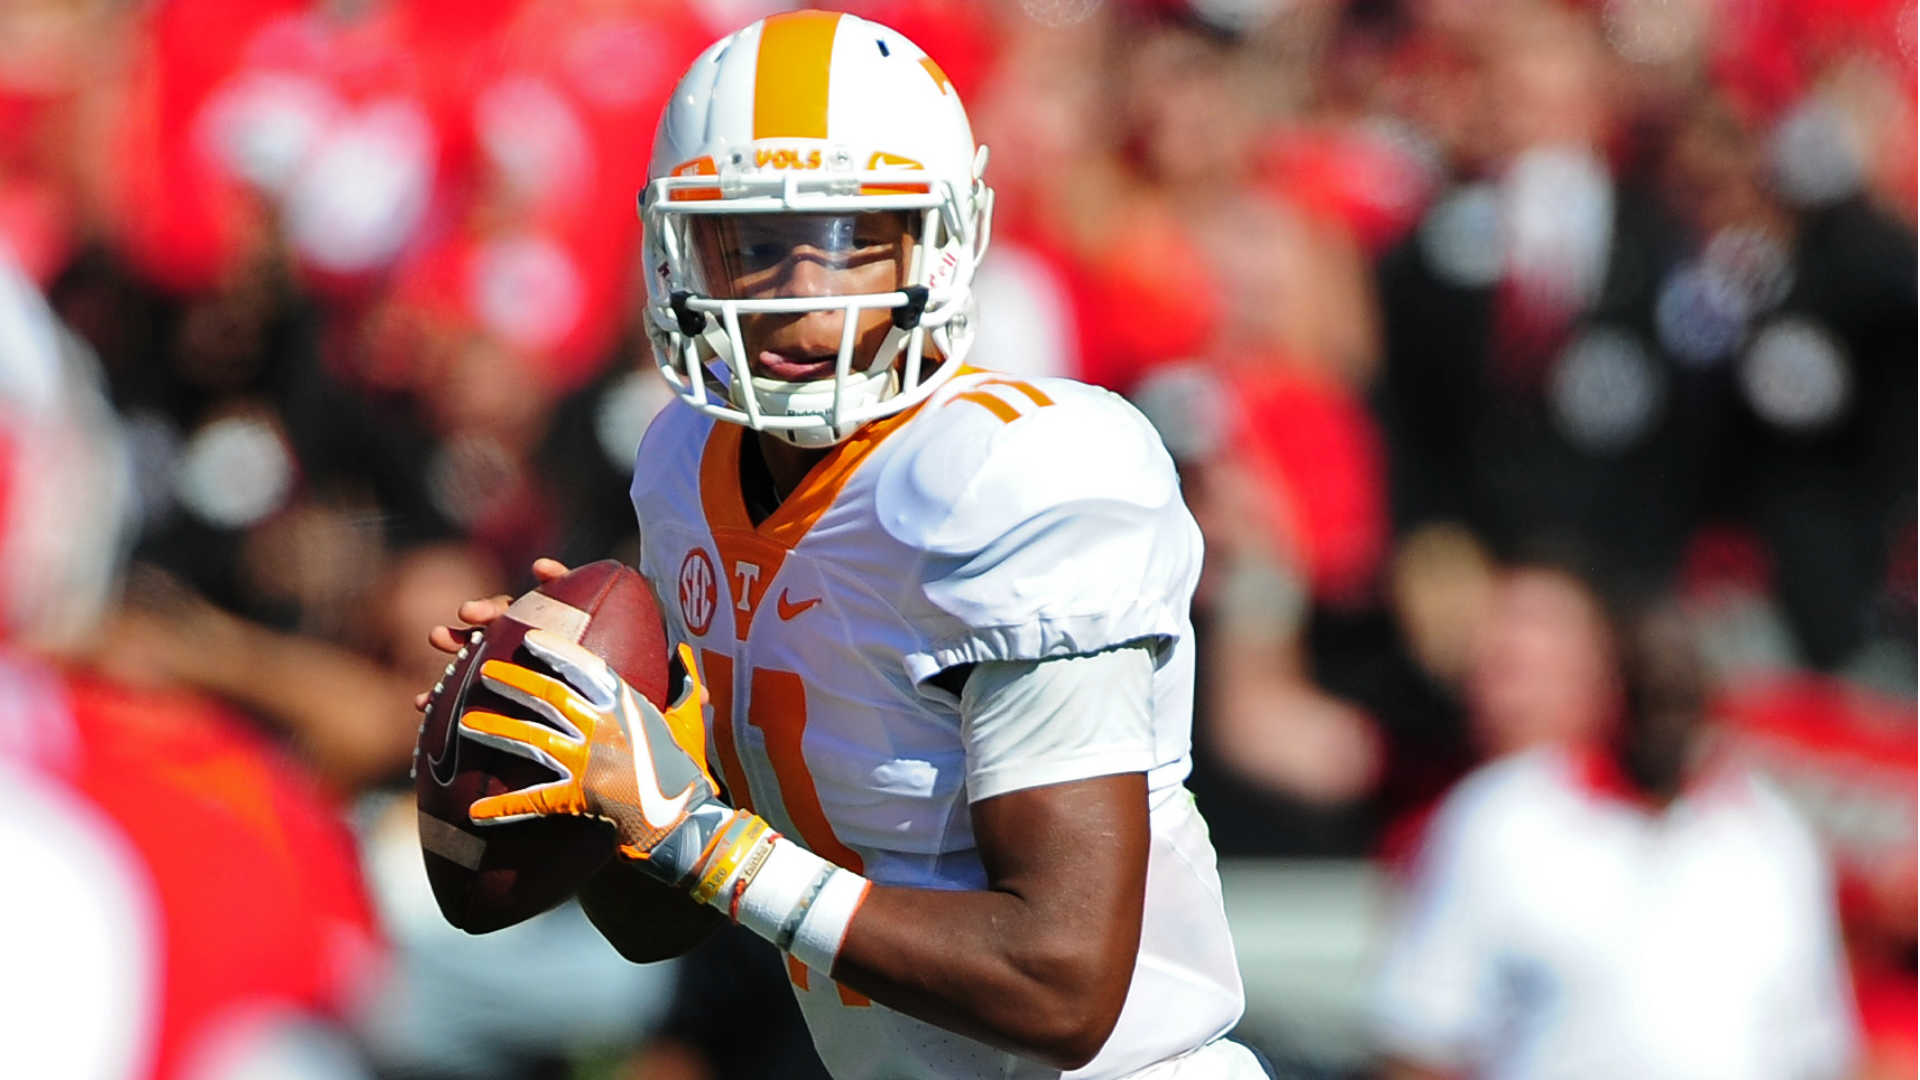 NFL DRAFT: Dobbs, Malone, Reeves-Maybin drafted in fourth round